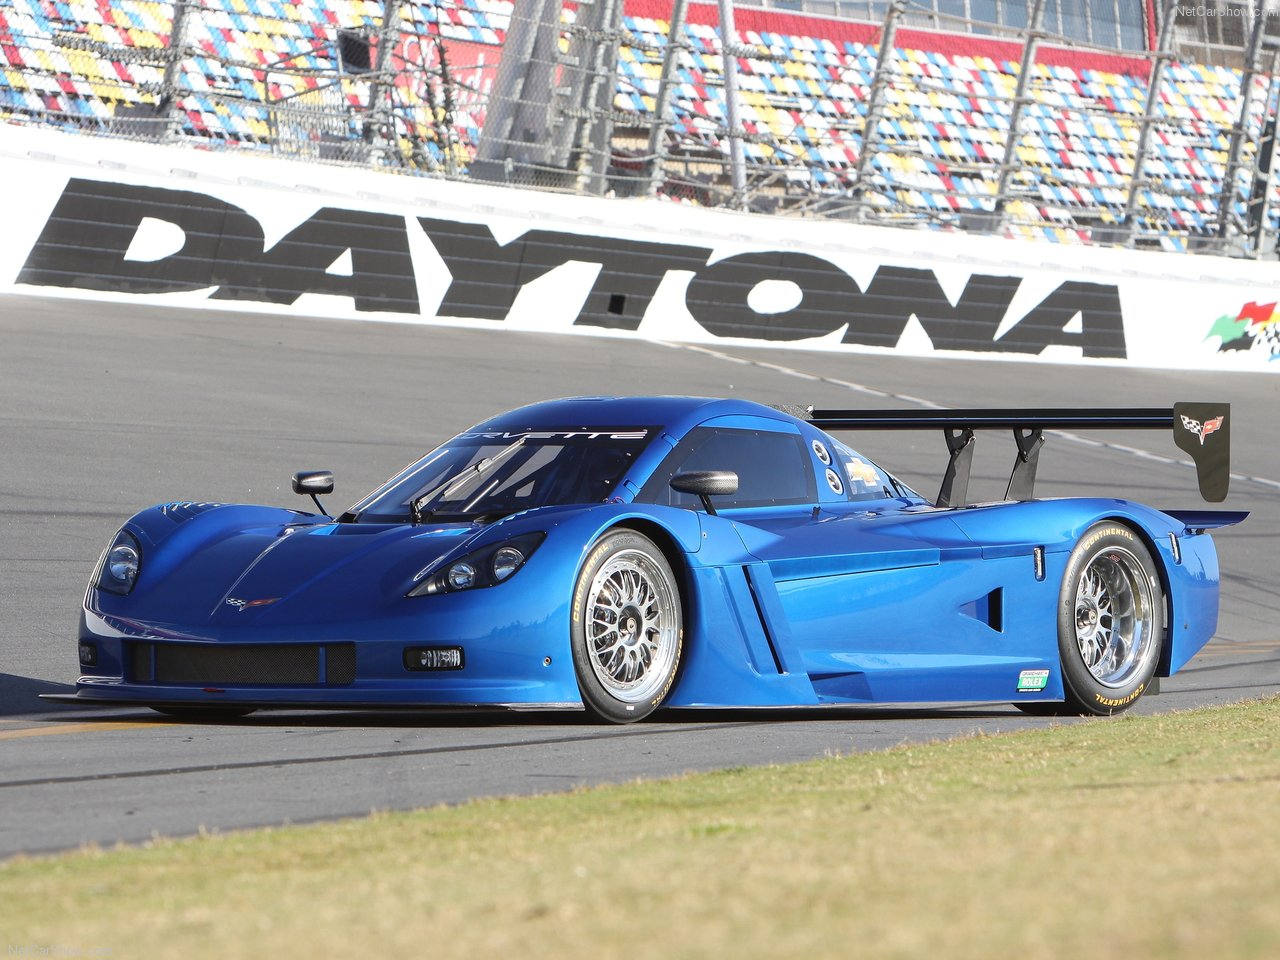 Chevrolet Corvette Daytona Racecar photo 86797